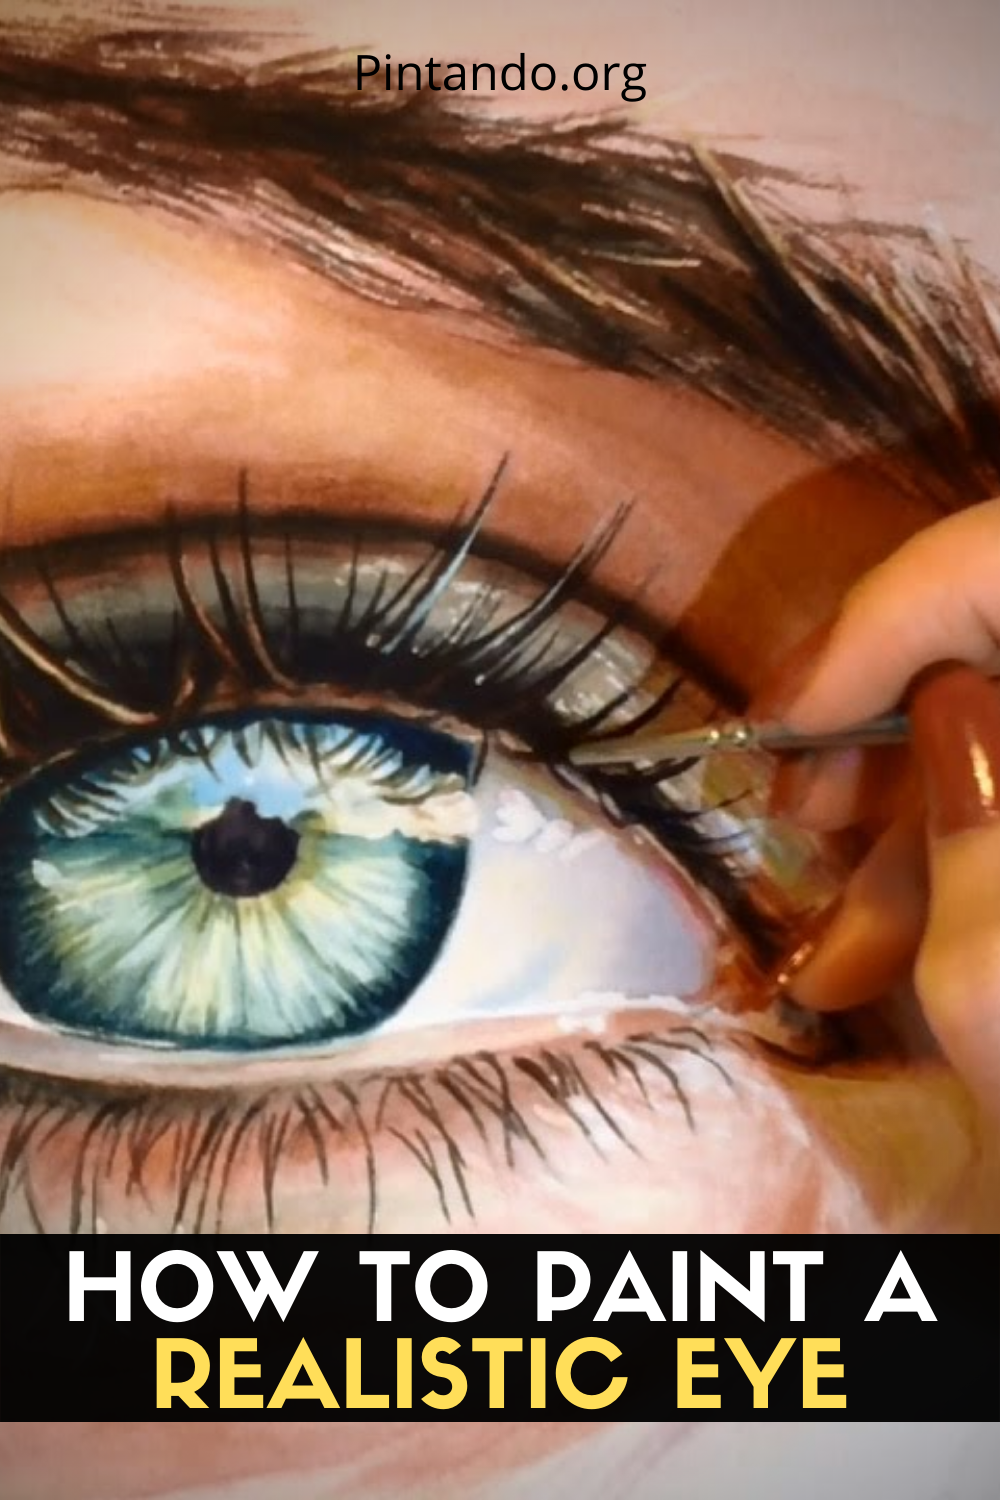 HOW TO PAINT A REALISTIC EYE (1)